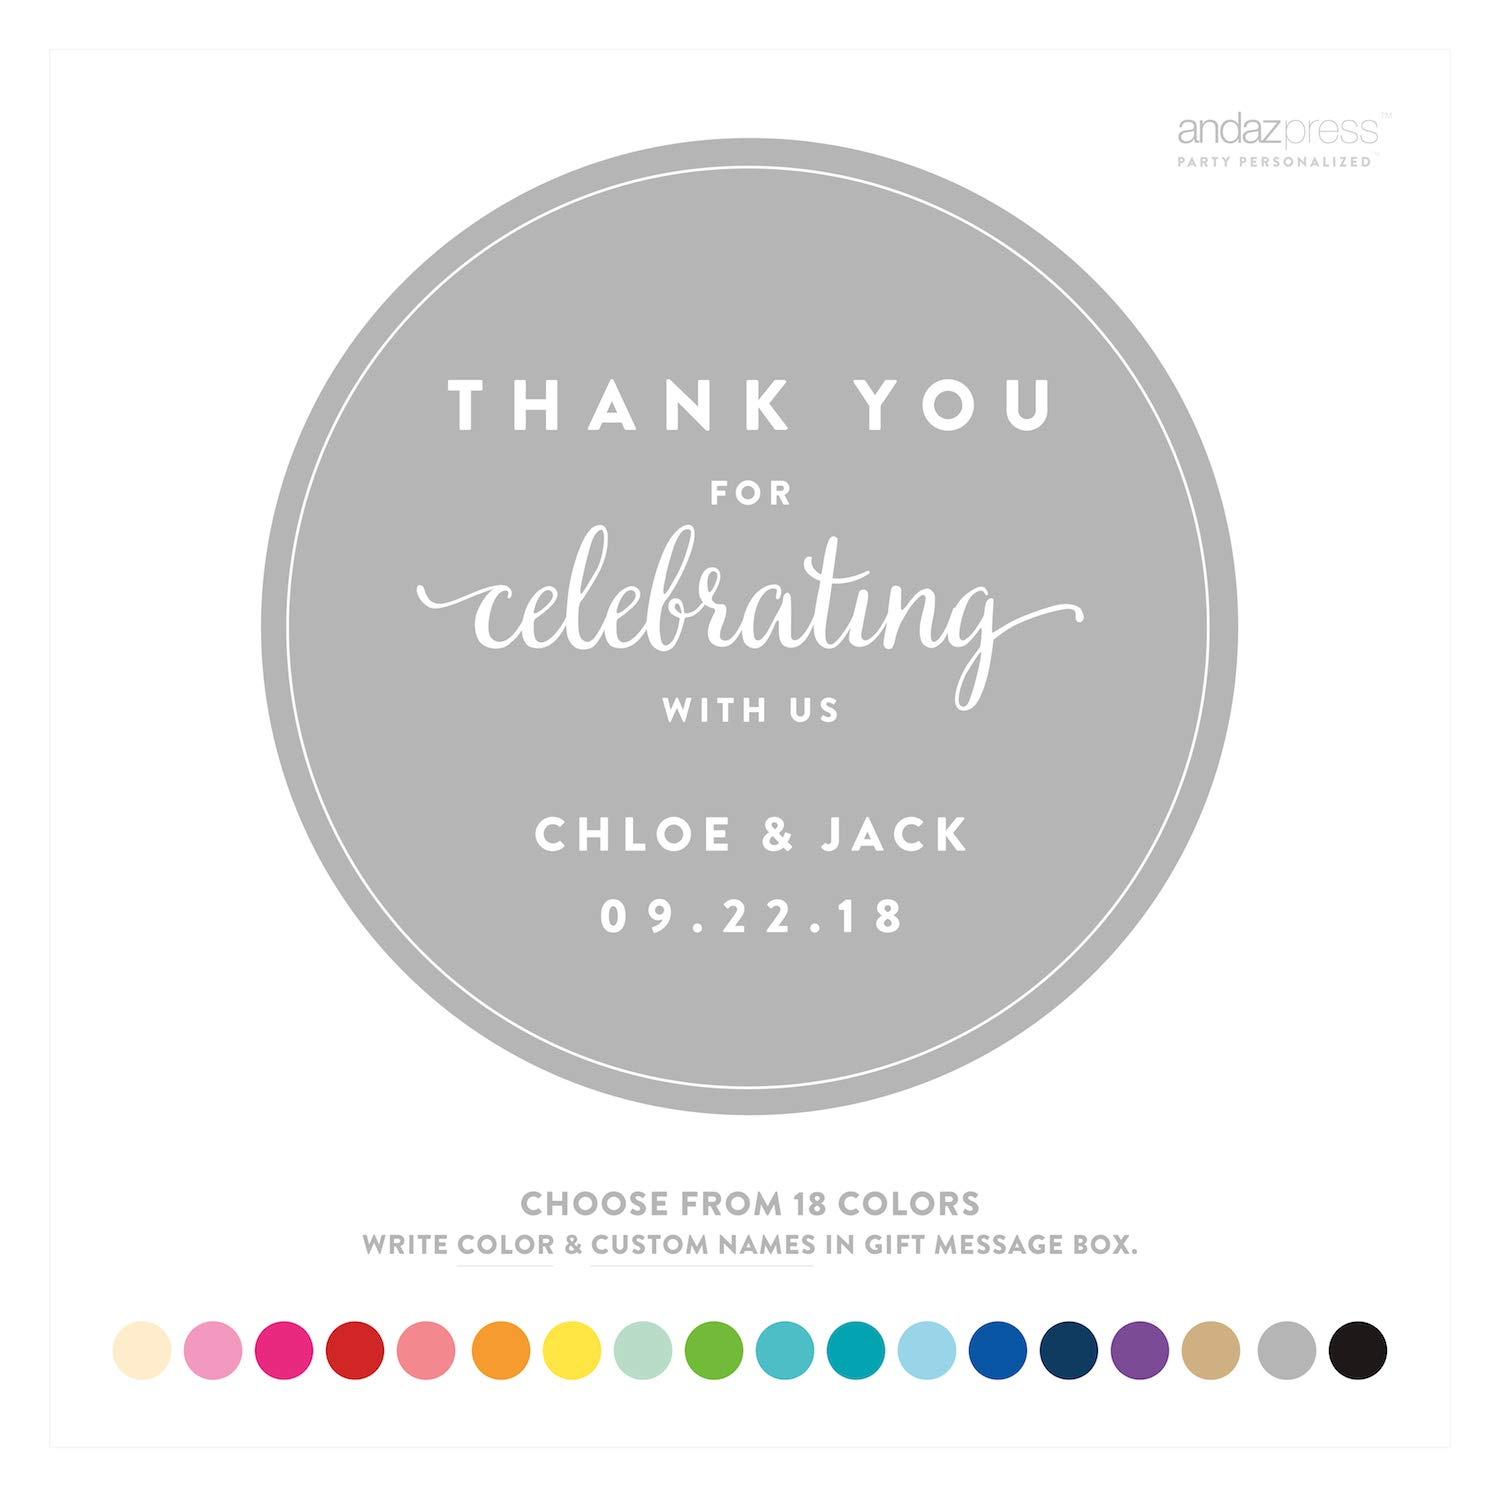 Amazon com andaz press personalized circle labels stickers wedding thank you for celebrating with us 40 pack custom made any name kitchen dining